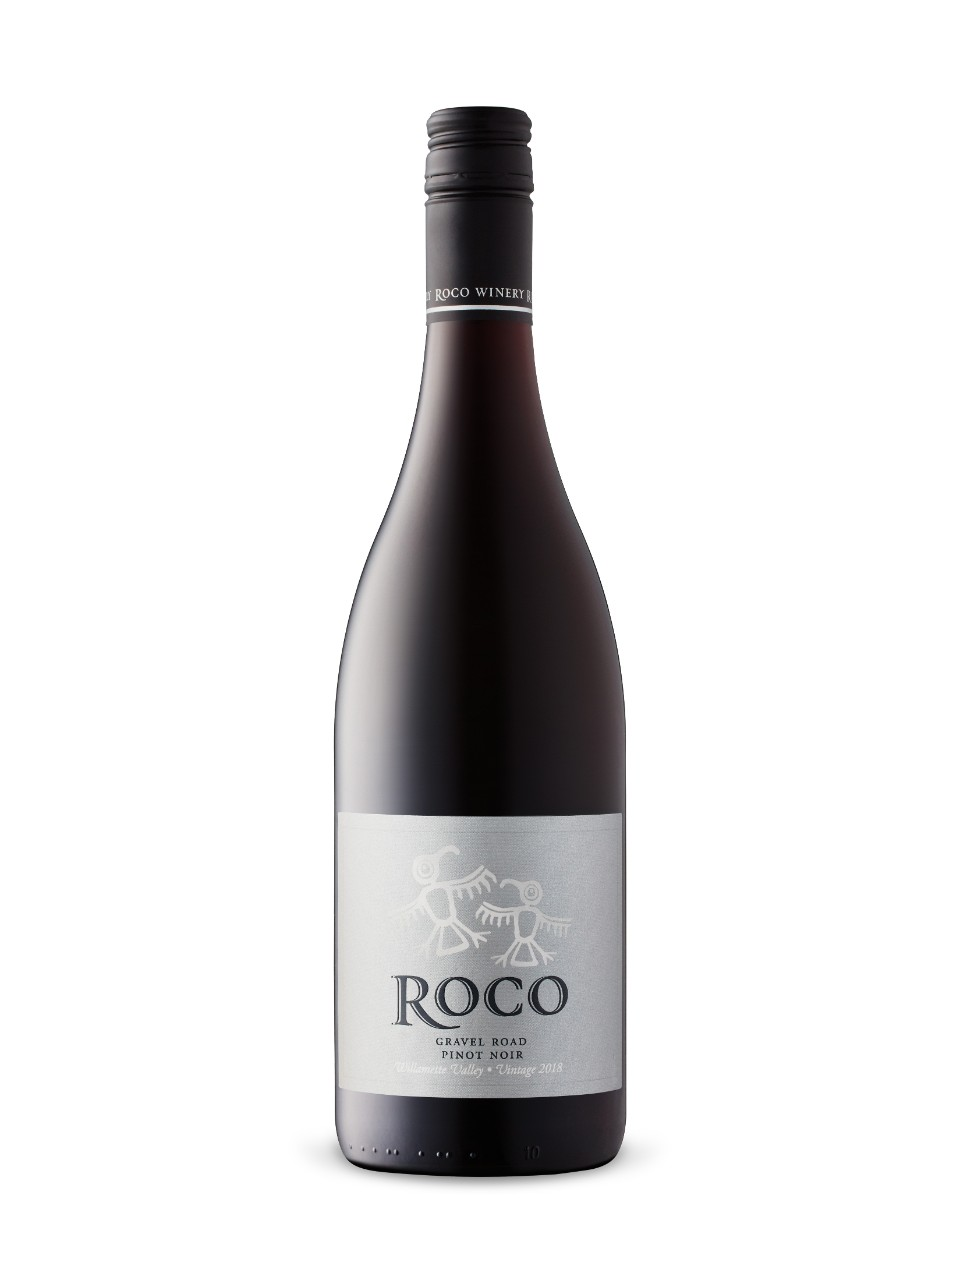 Roco Gravel Road Pinot Noir 2018 from LCBO